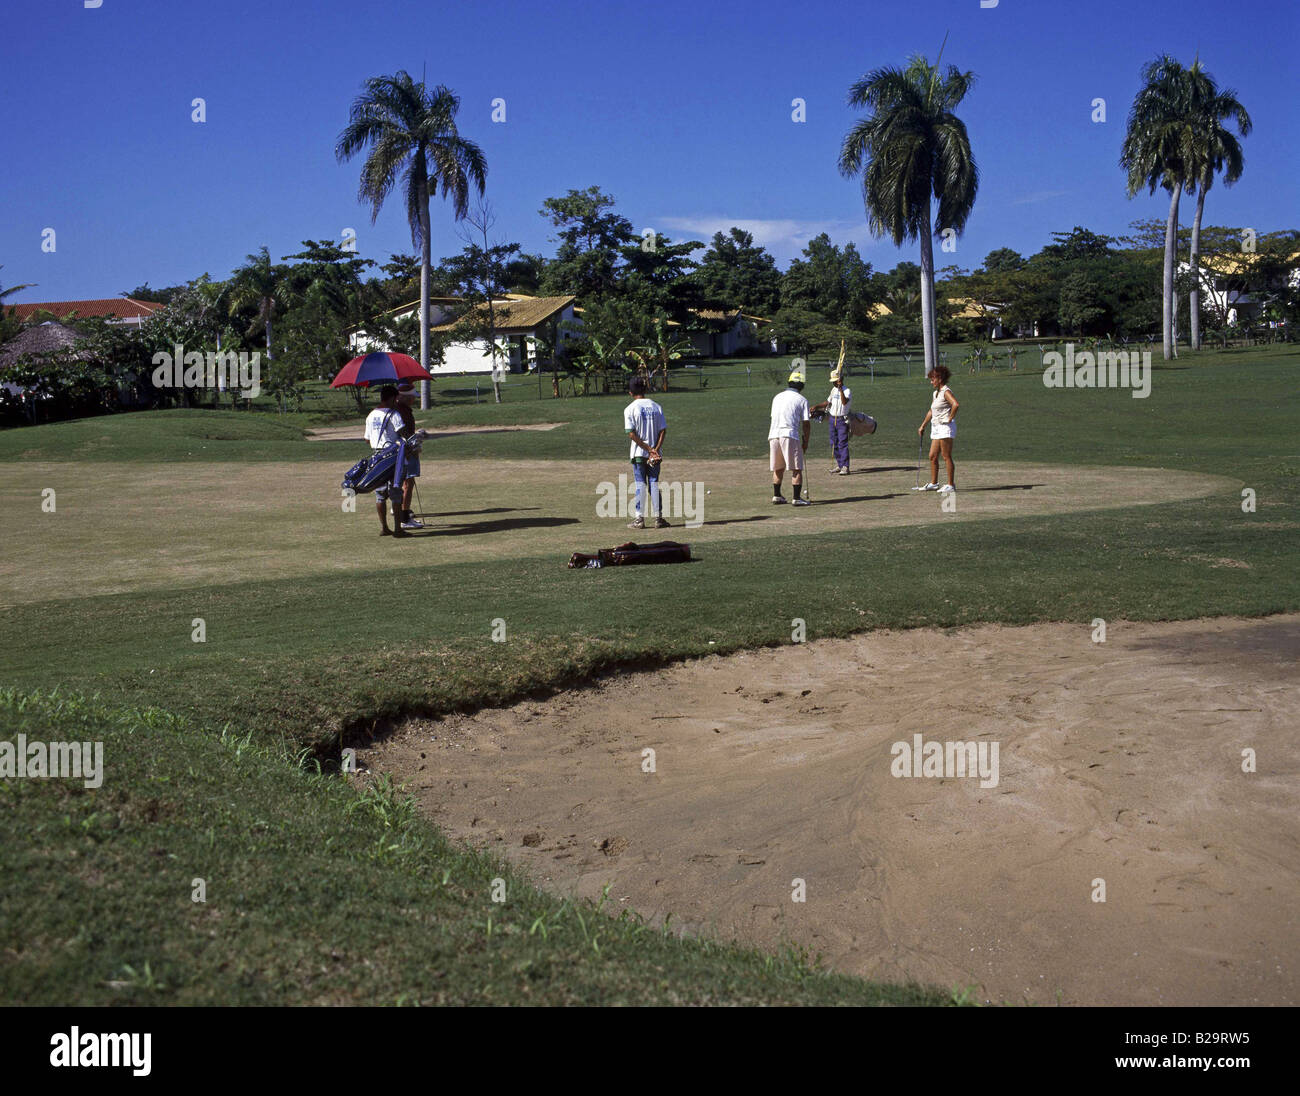 Golf Course Playa Dorada Dominican Republic Ref WP KW 6136 COMPULSORY CREDIT World Pictures Photoshot - Stock Image